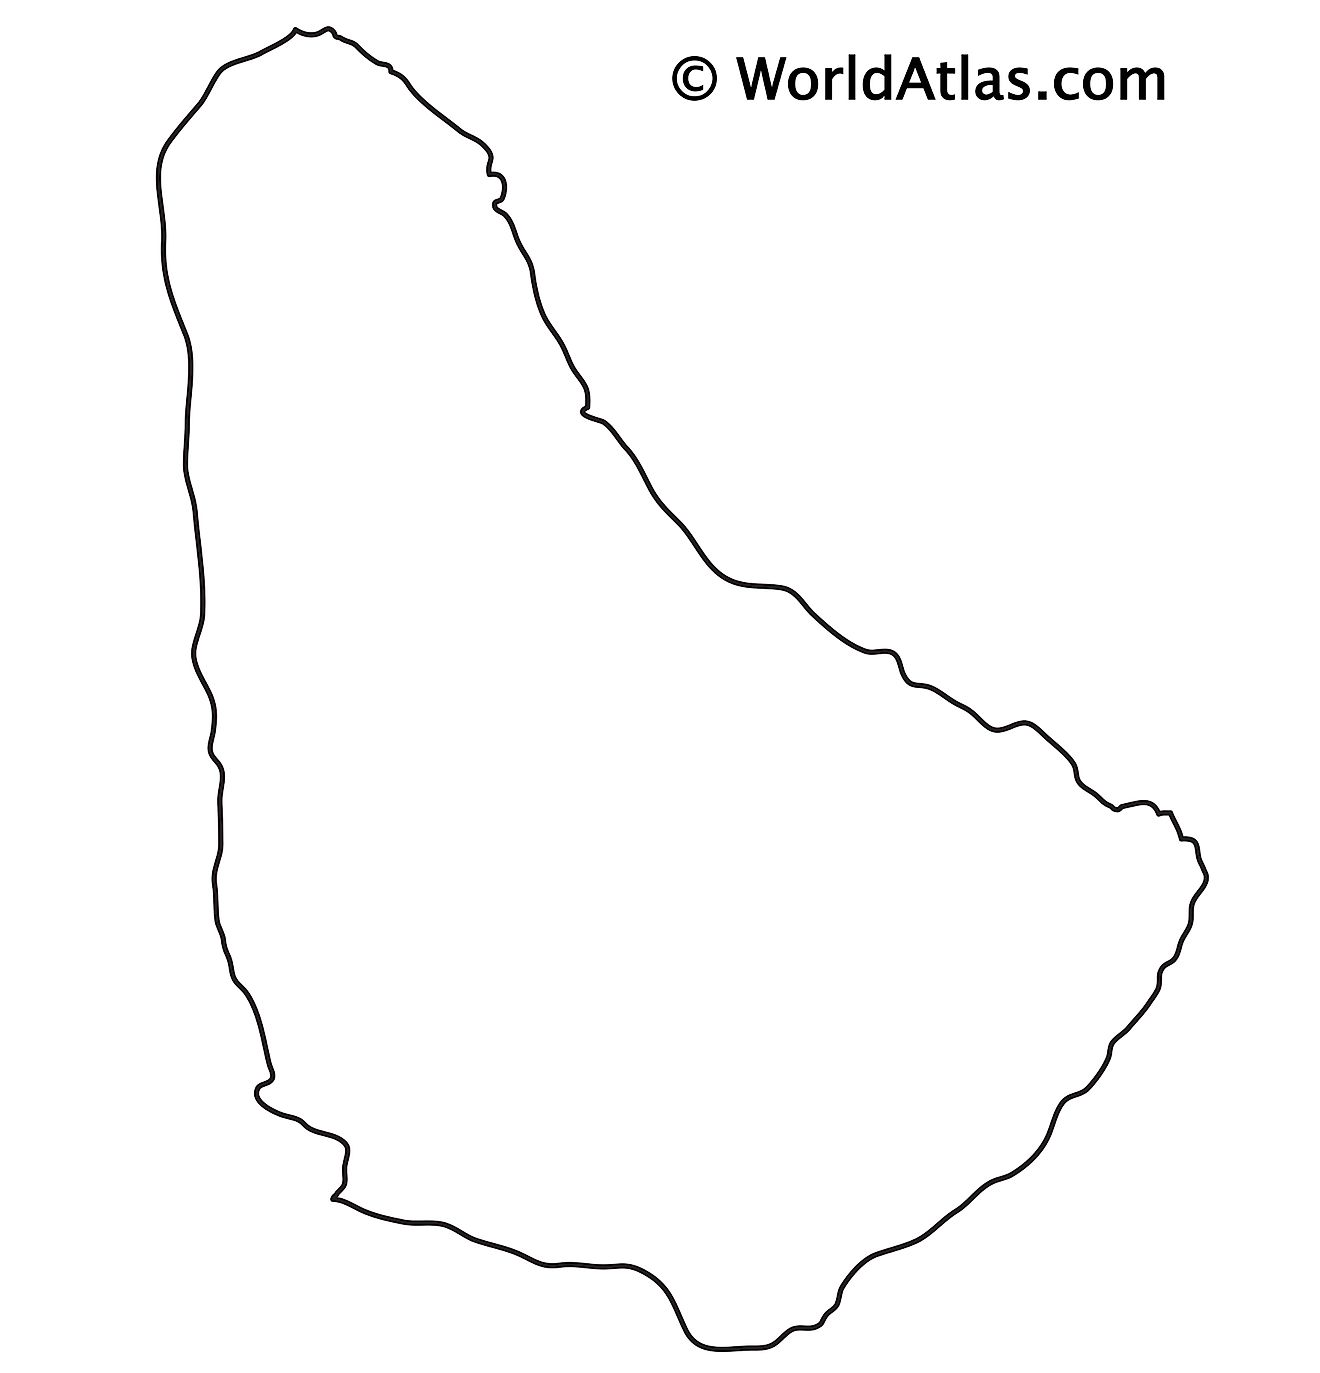 Blank outline map of Barbados